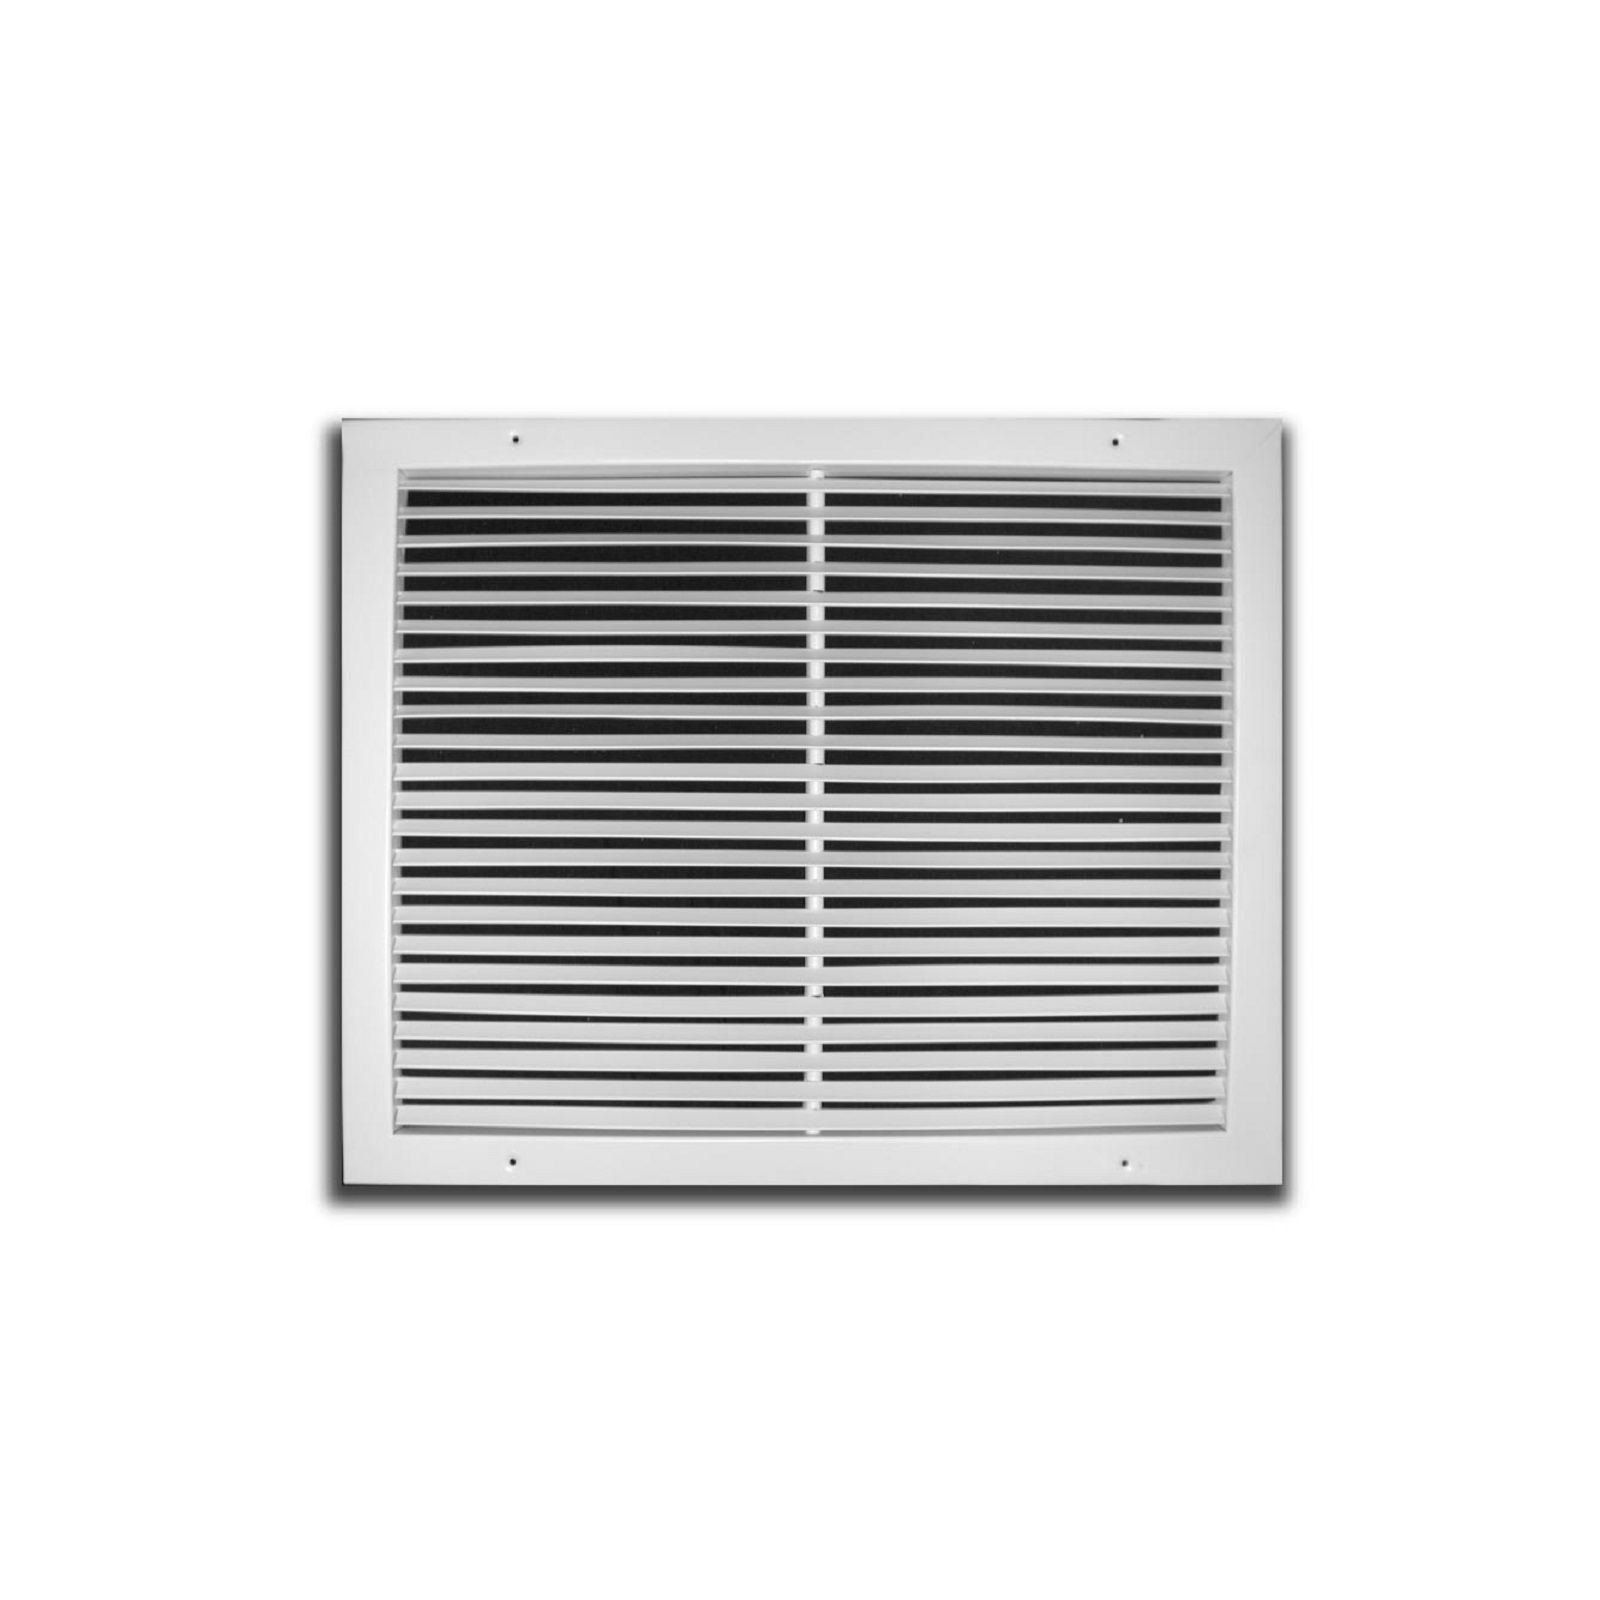 "TRUaire 270 14X08 - Steel Fixed Bar Return Air Grille, White, 14"" X 08"""